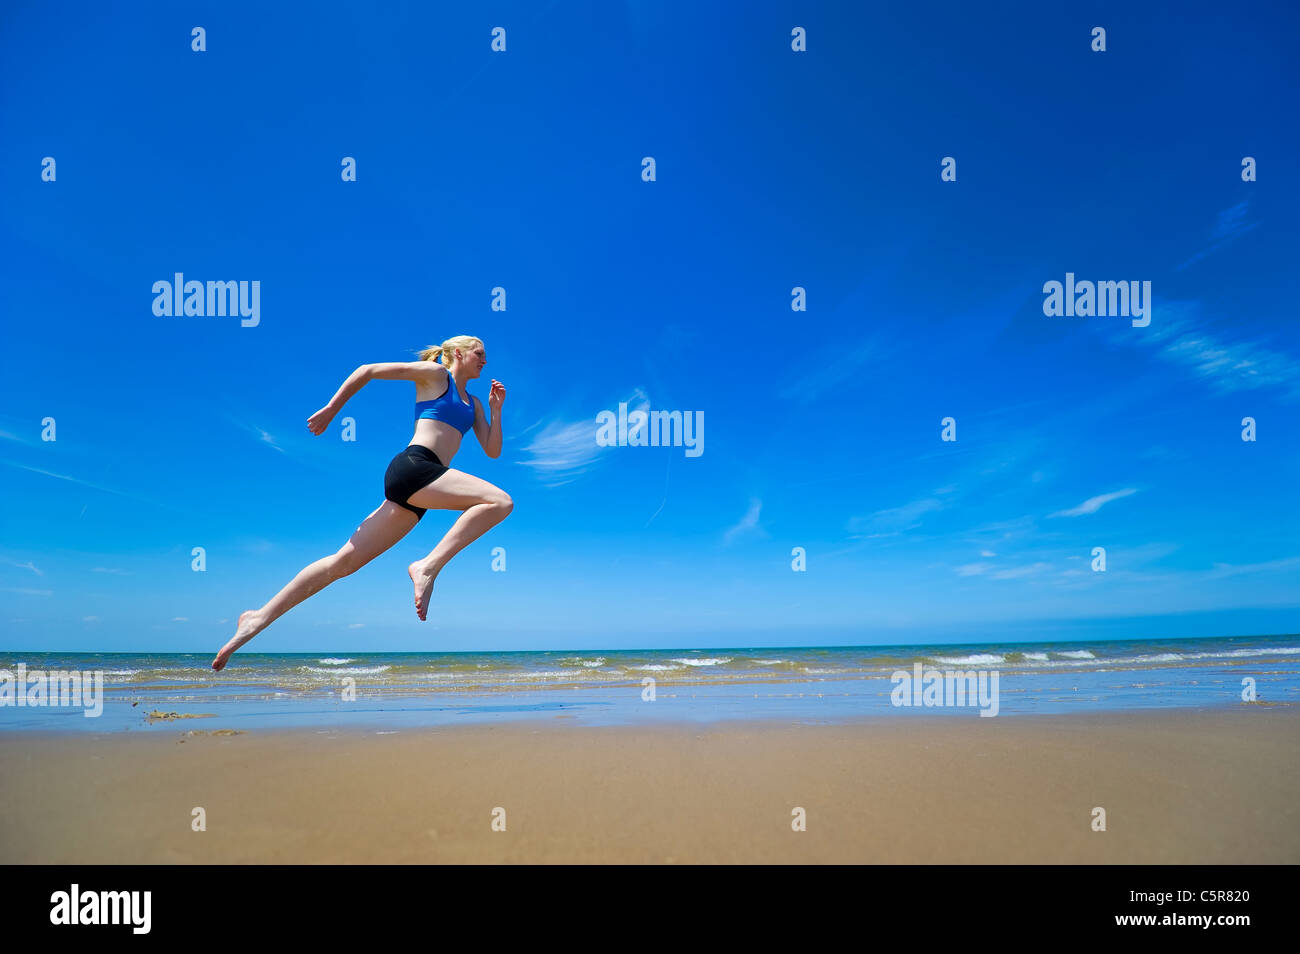 An athlete jogging along the oceans edge. - Stock Image